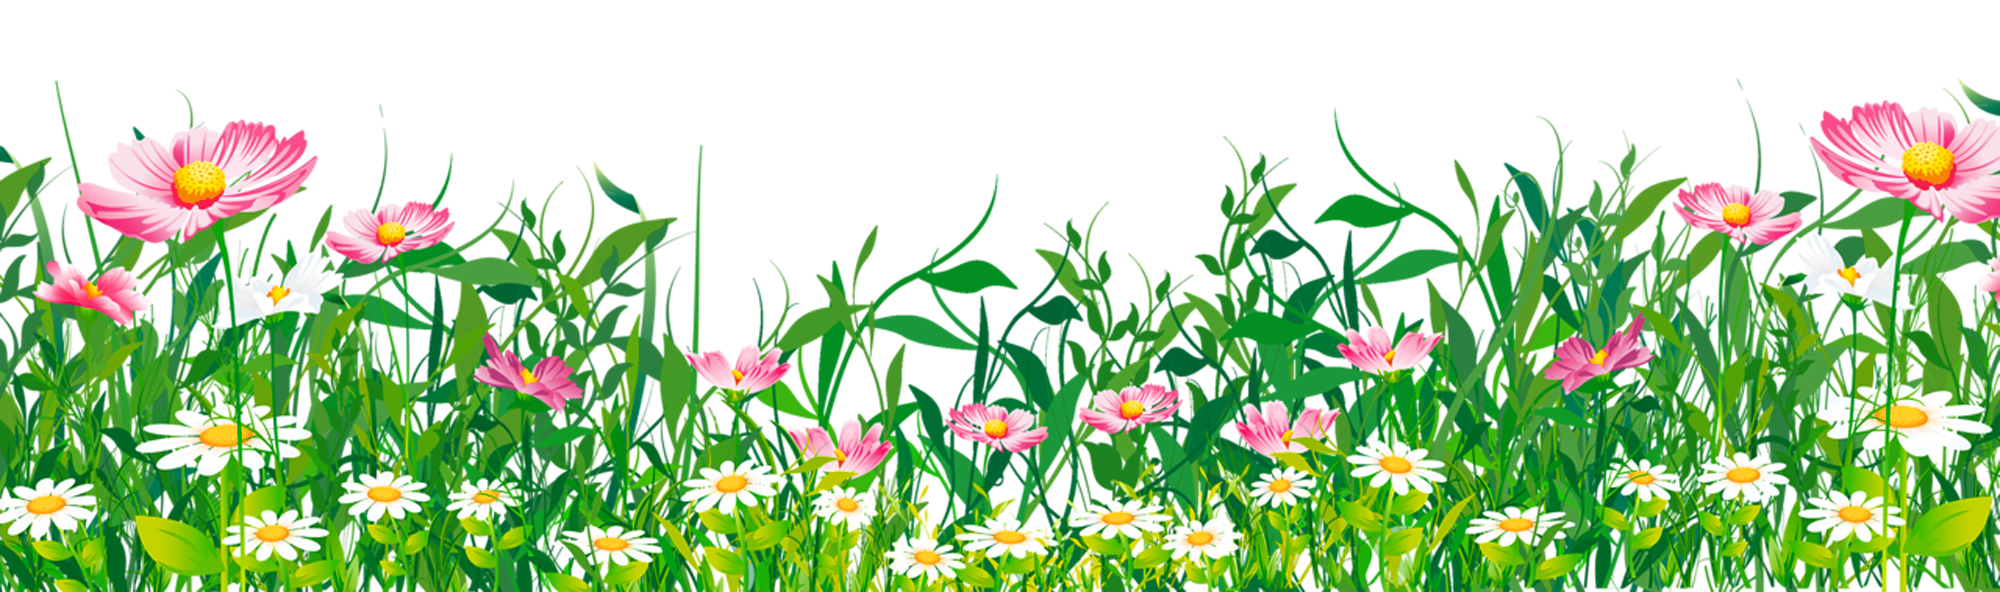 Flower meadow clipart. Grass with flowers png